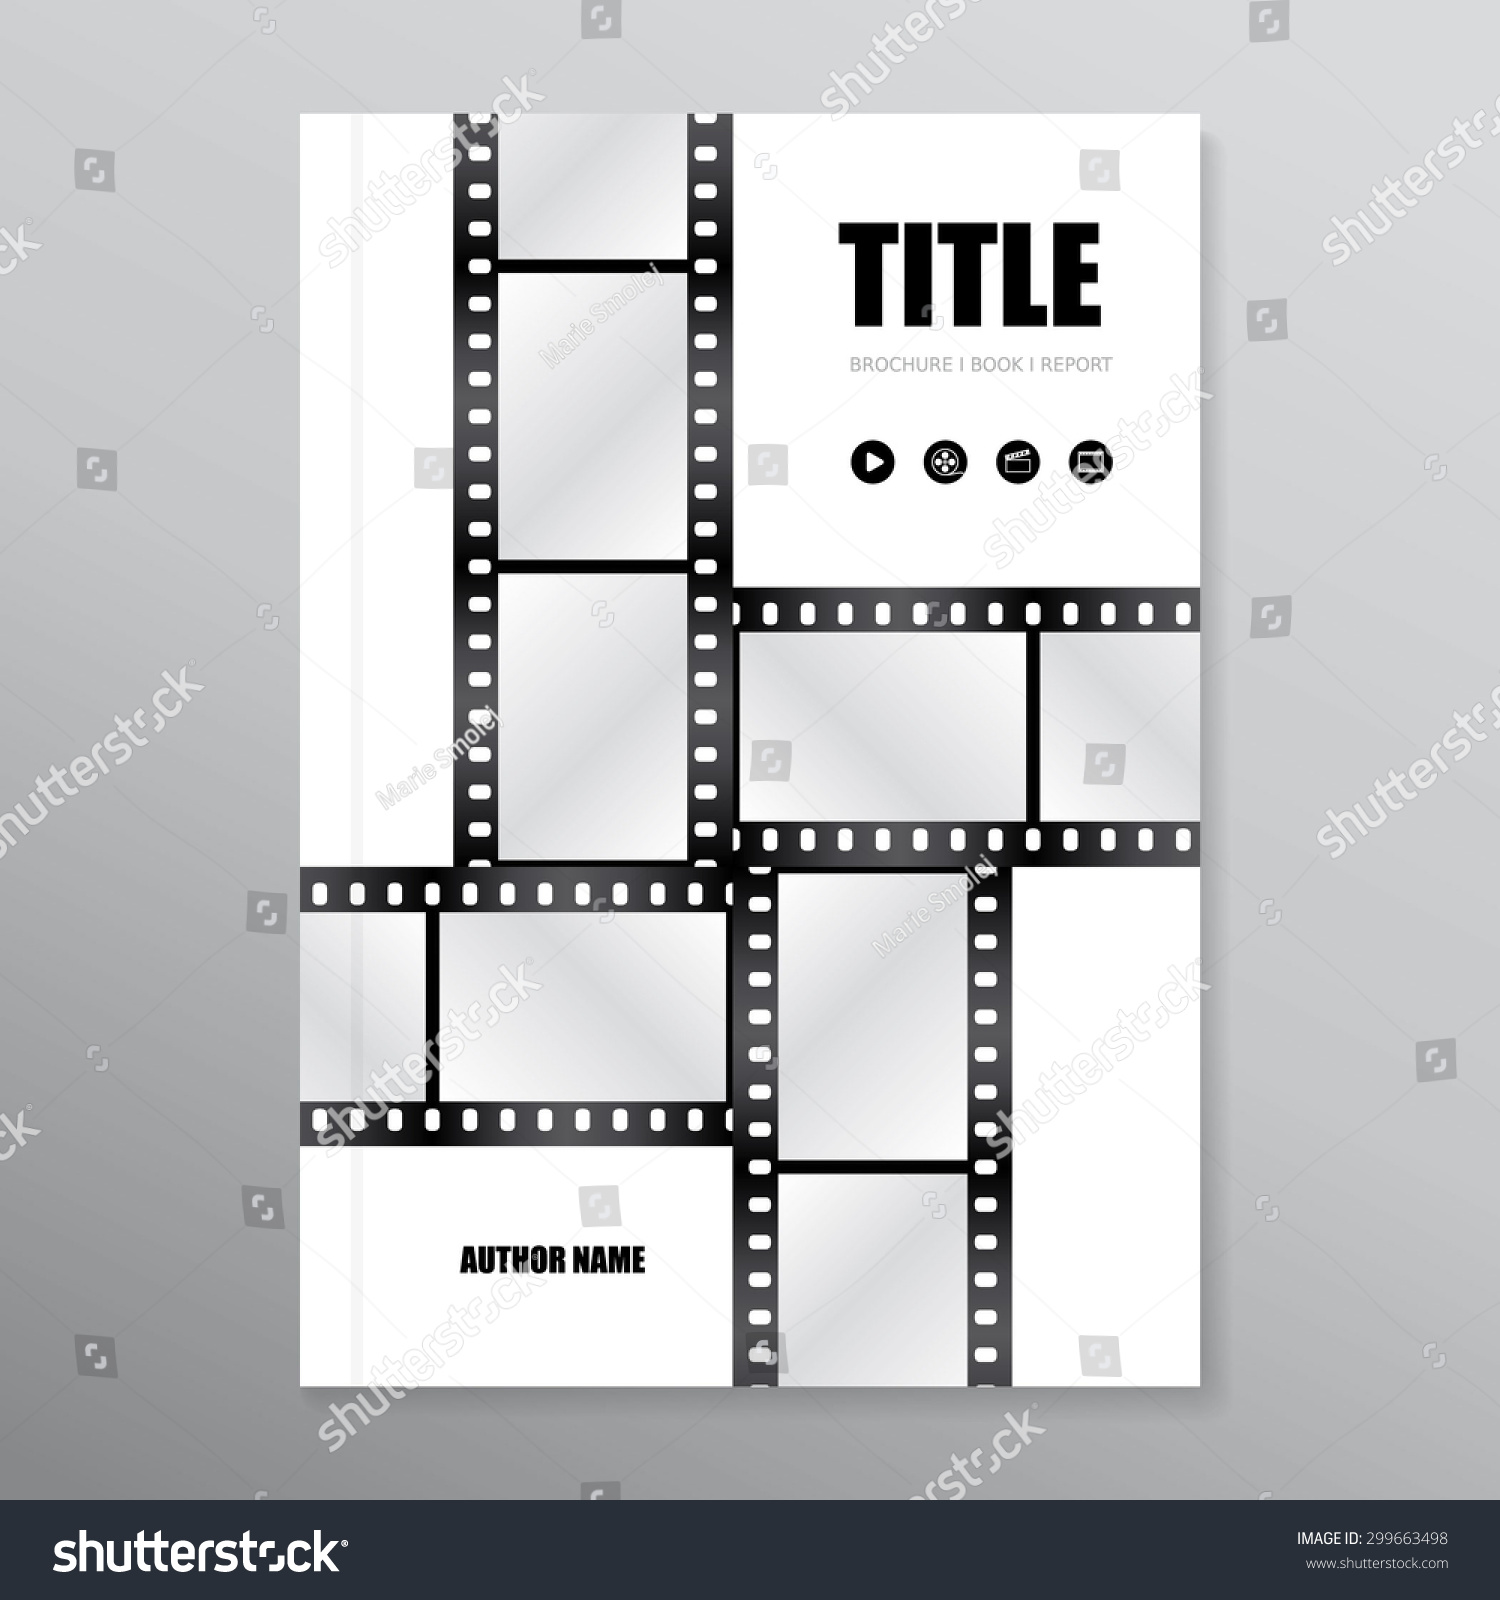 movie brochure template - download film festival brochure template gantt chart